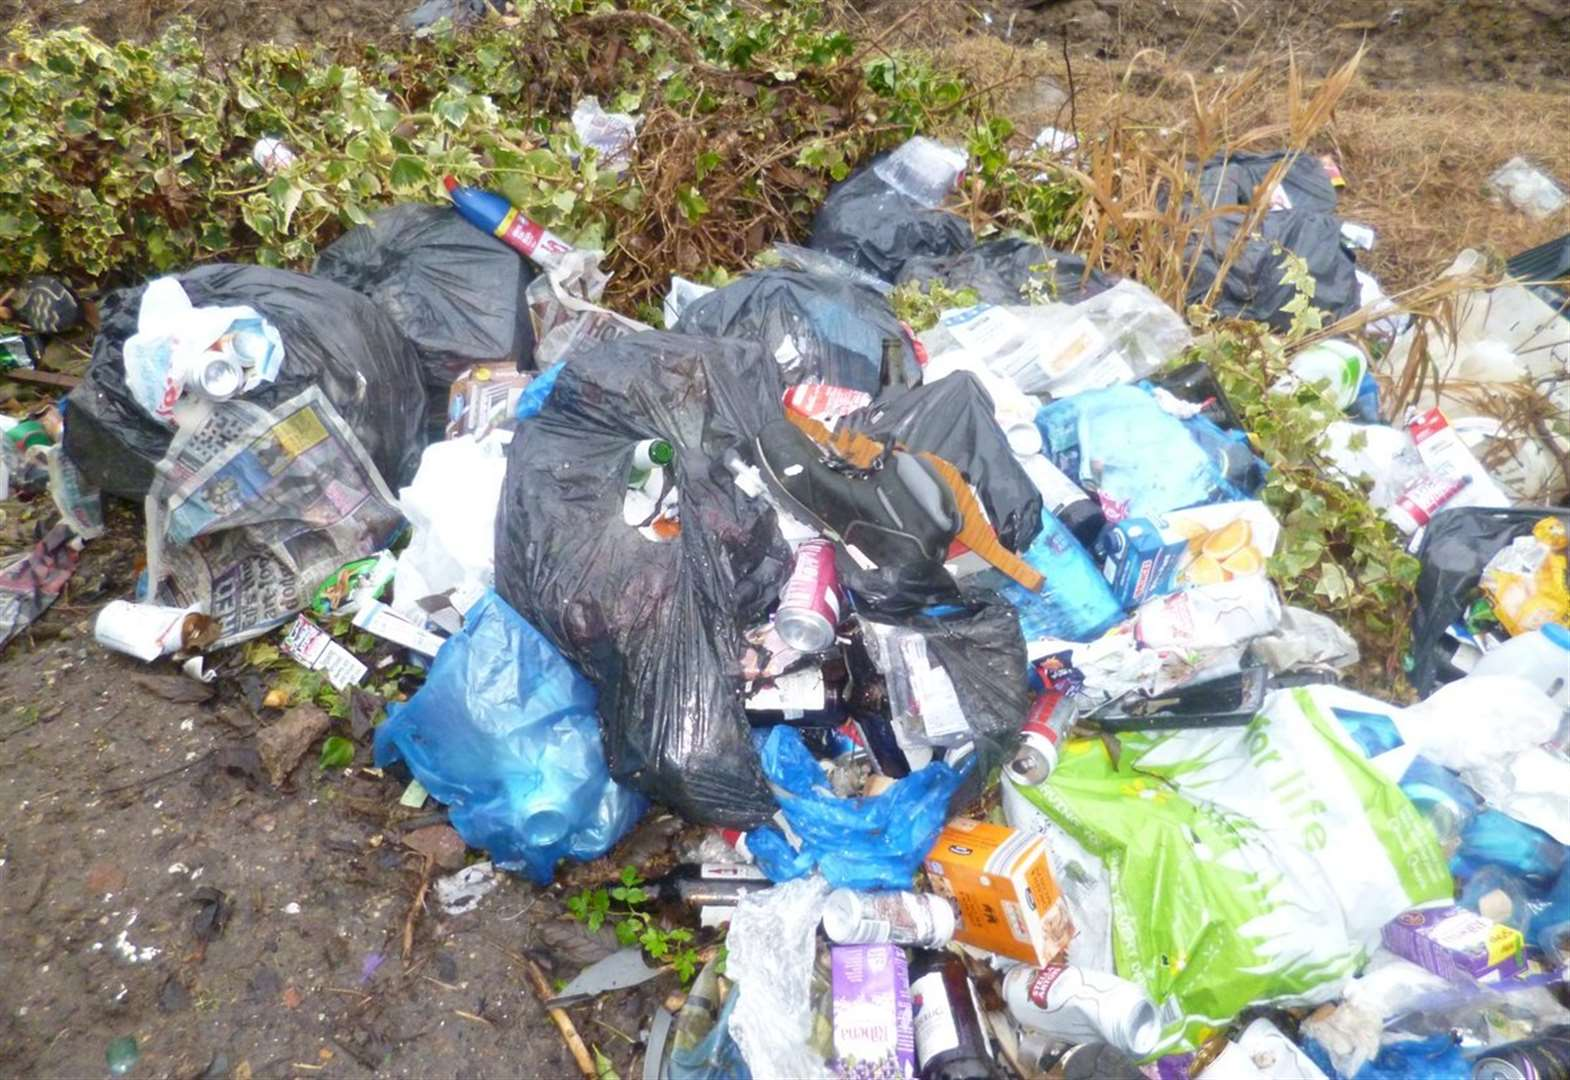 Fly-tipping incidents on the rise in Babergh